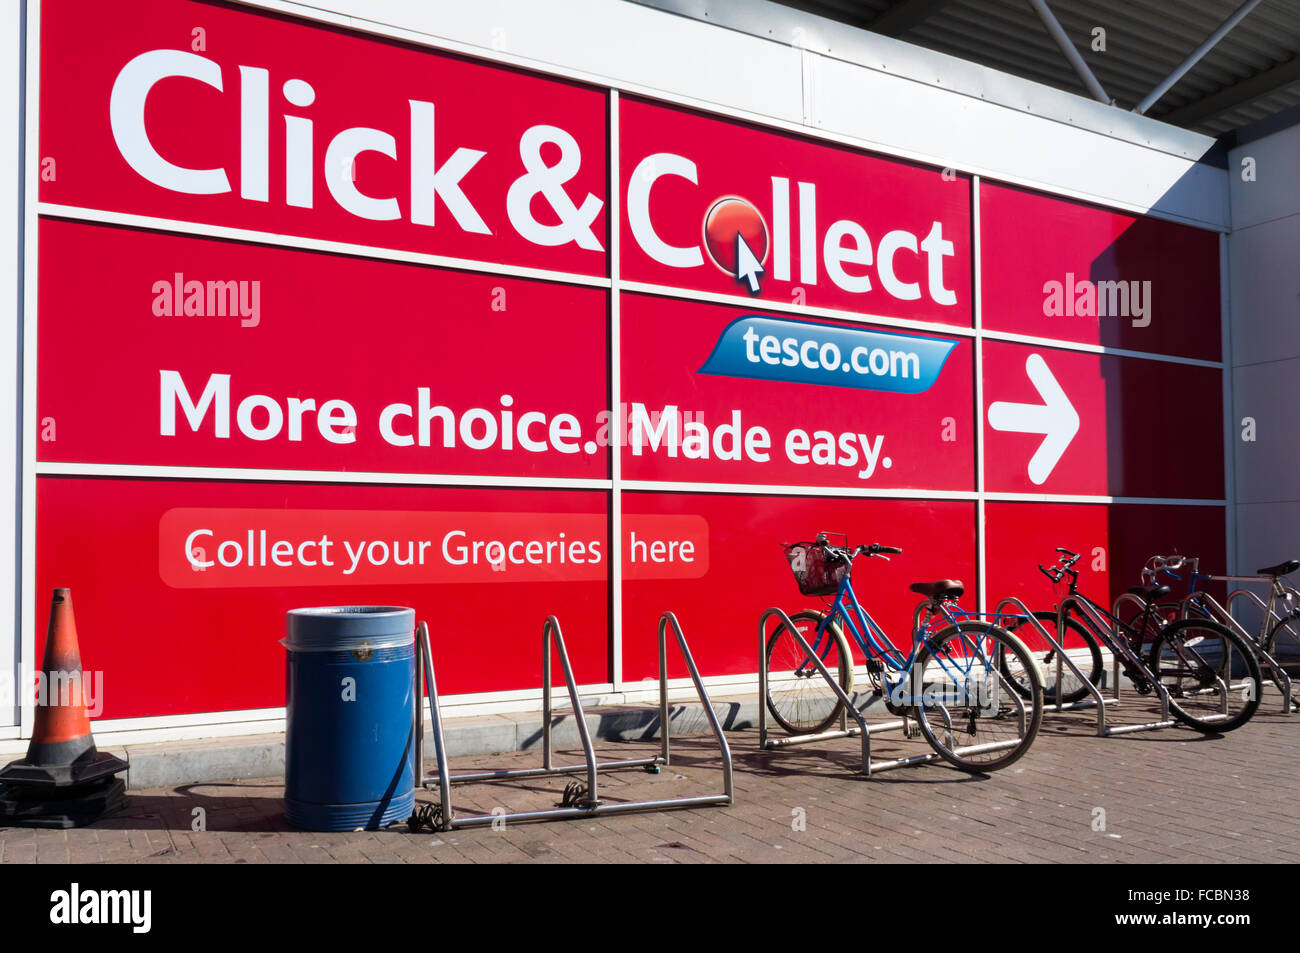 A large Tesco Click & Collect sign. - Stock Image